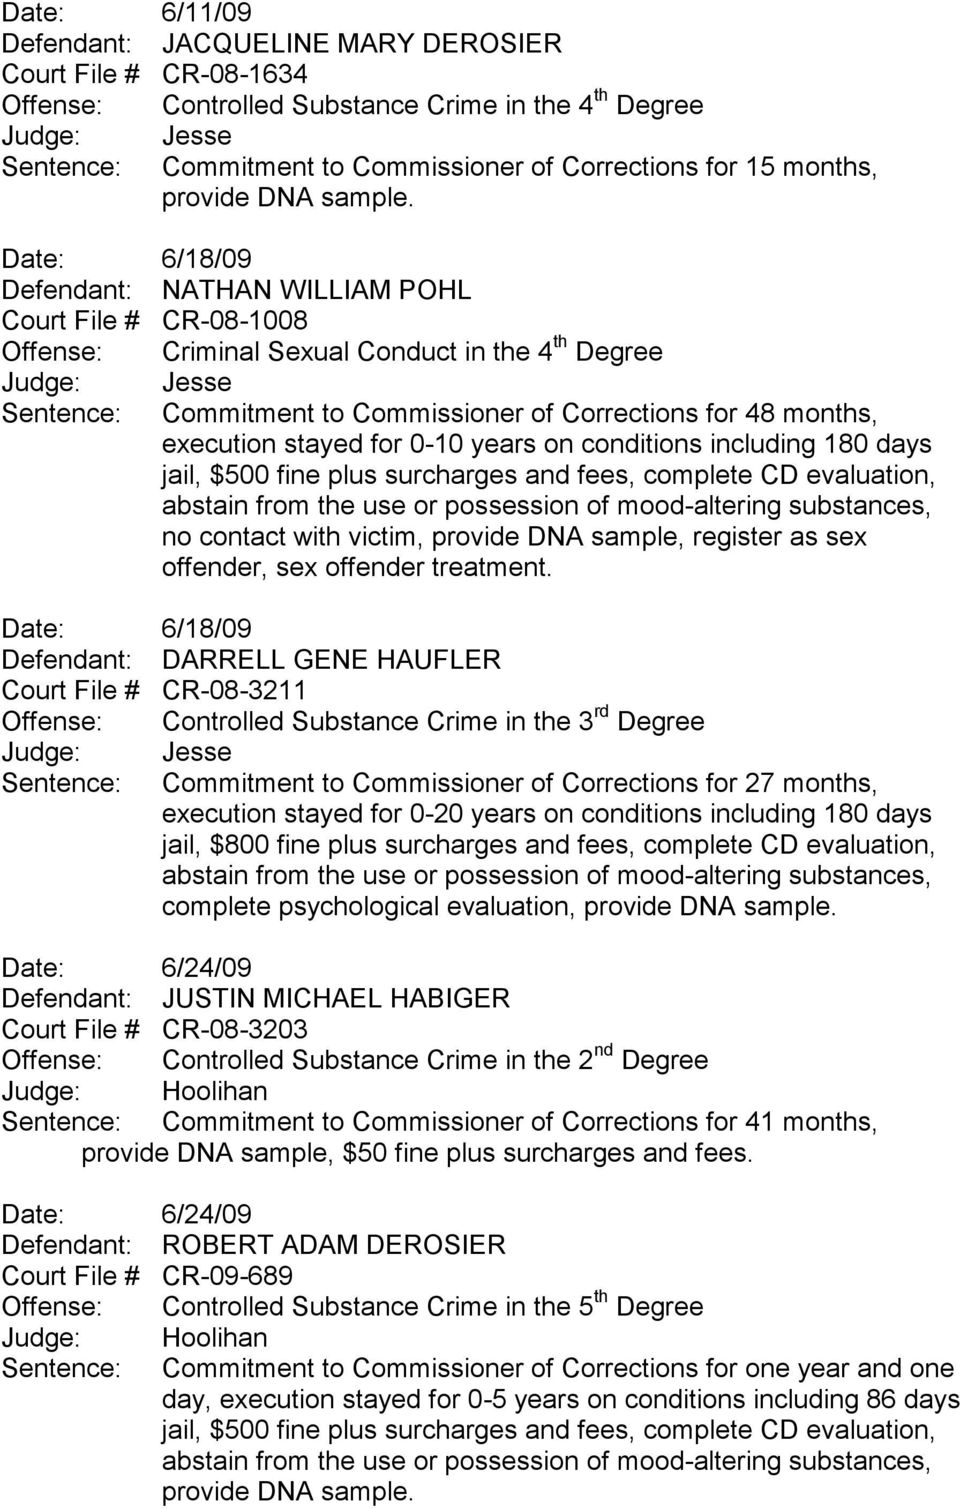 stayed for 0-10 years on conditions including 180 days jail, $500 fine plus surcharges and fees, complete CD evaluation, no contact with victim, provide DNA sample, register as sex offender, sex